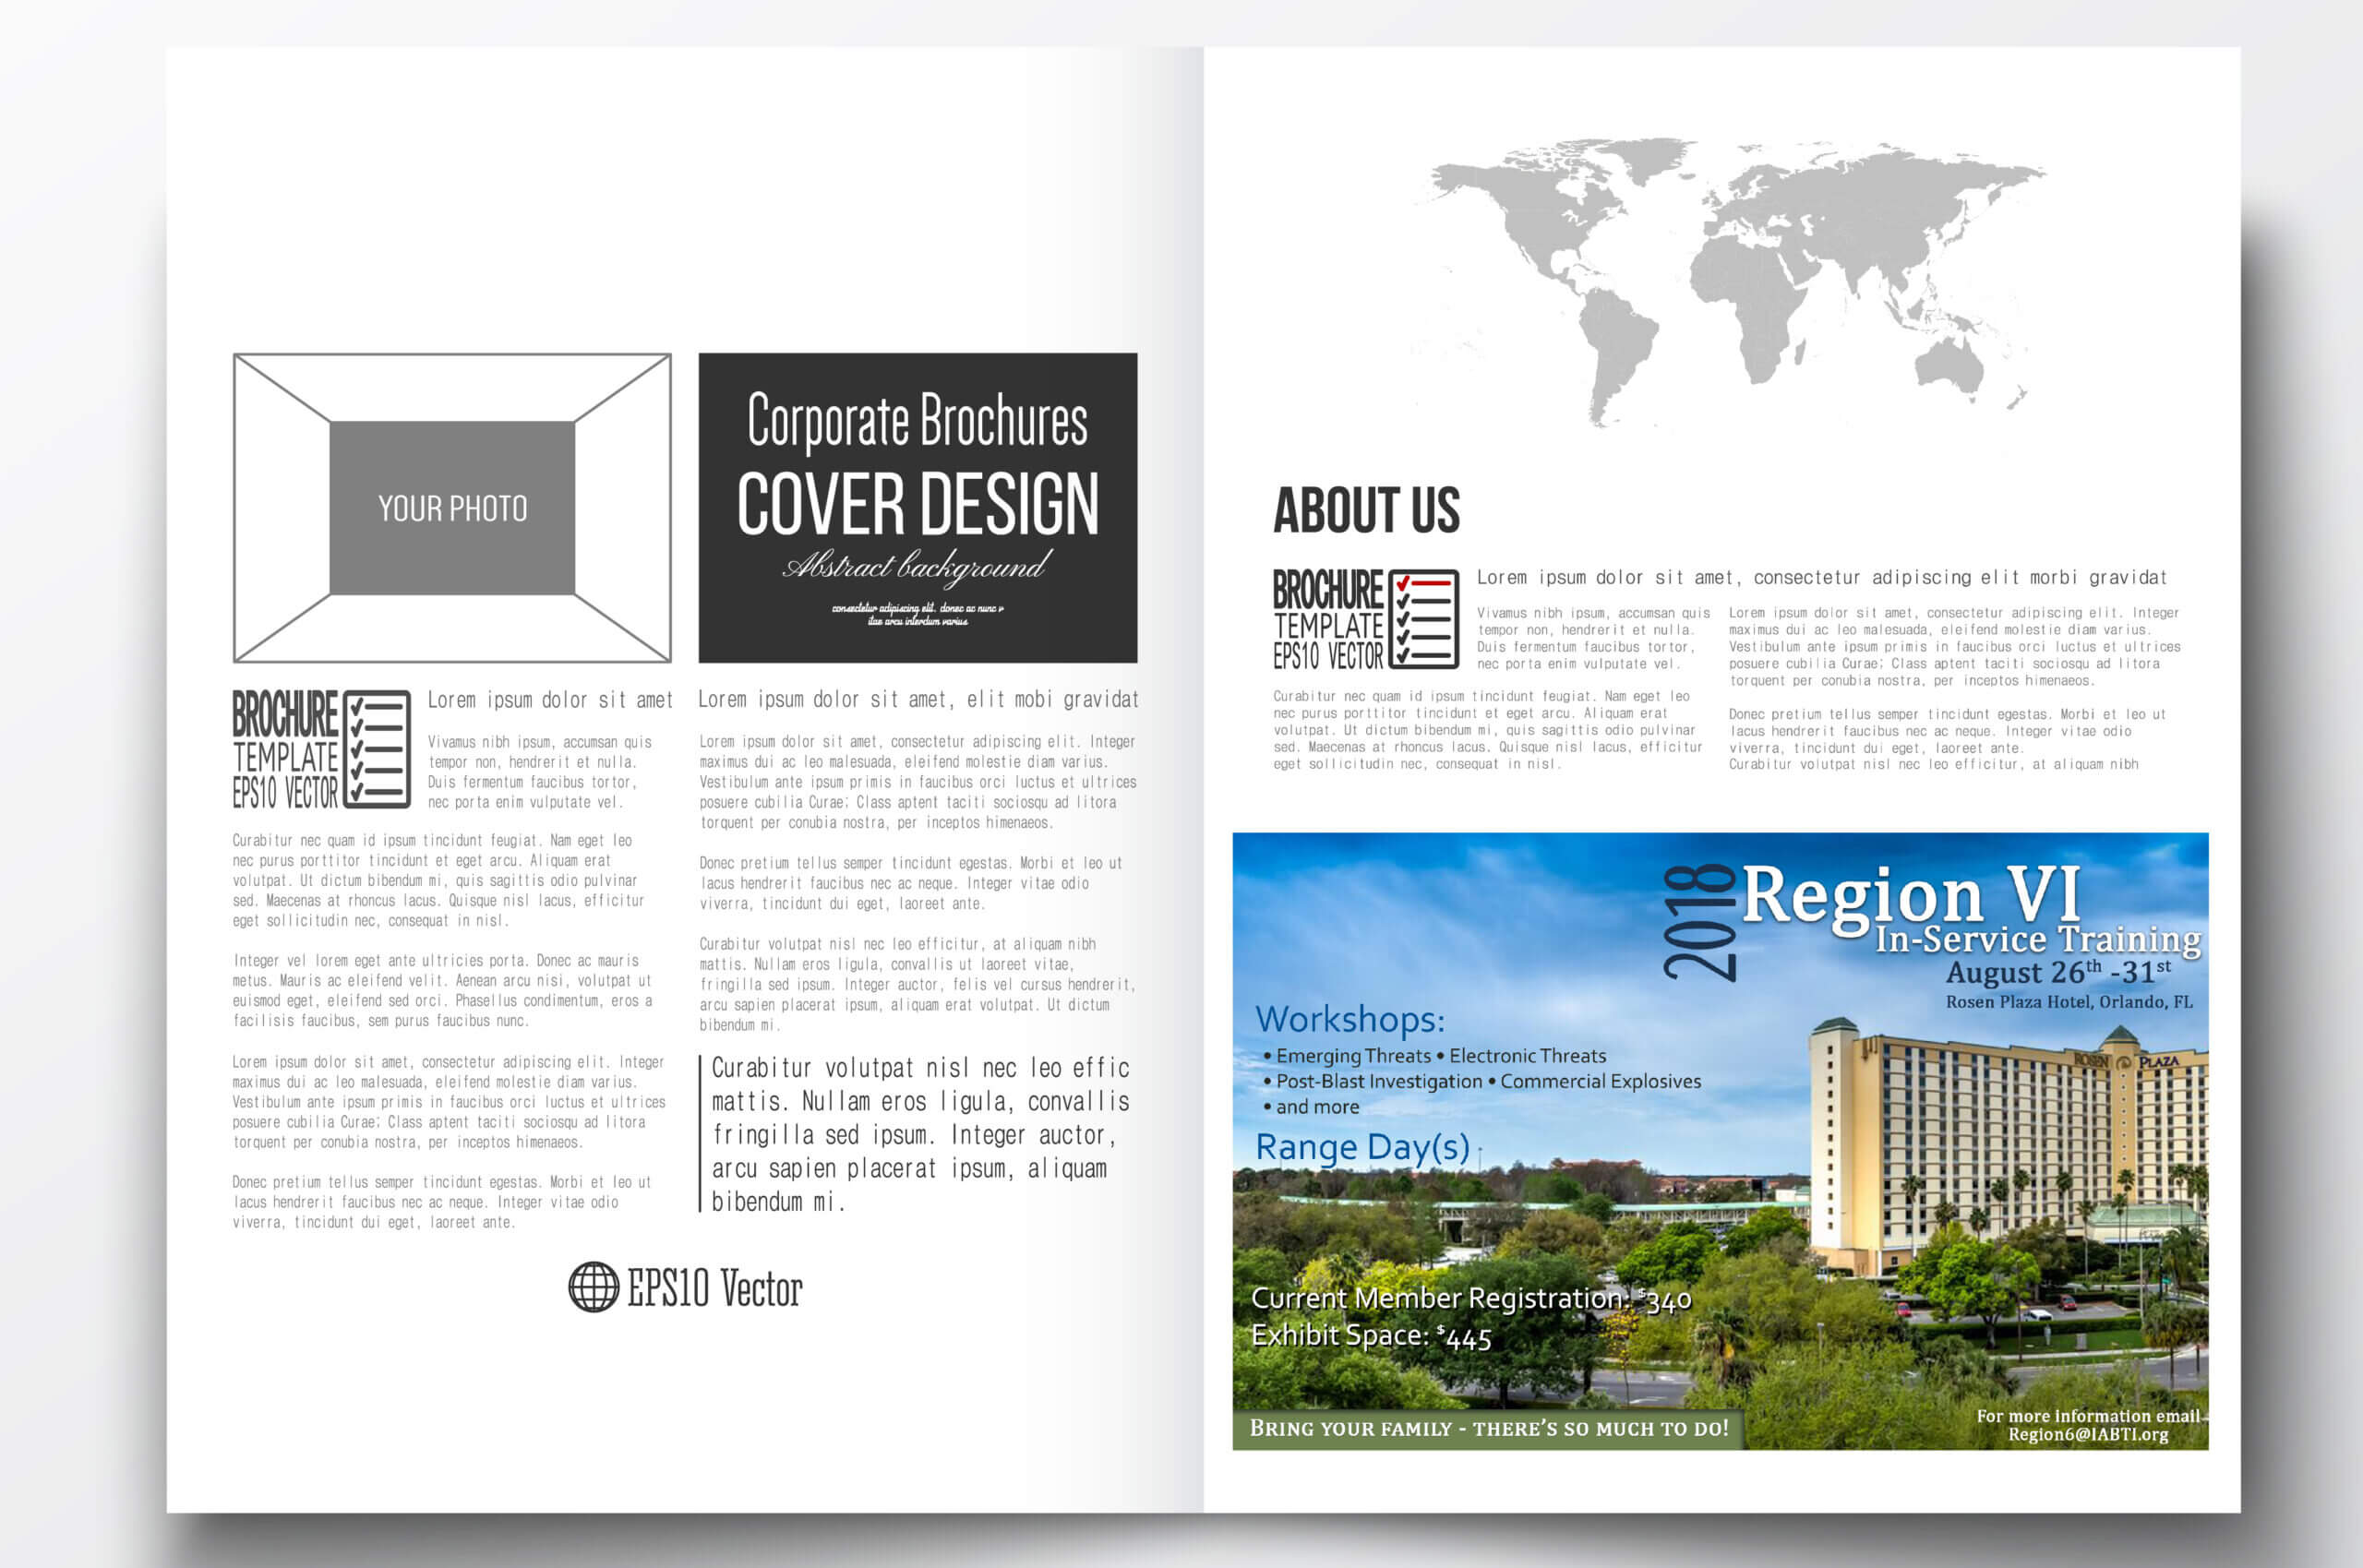 027 Half Page Template Ideas Regioni6Ad Stupendous Ad Free Intended For Magazine Ad Template Word